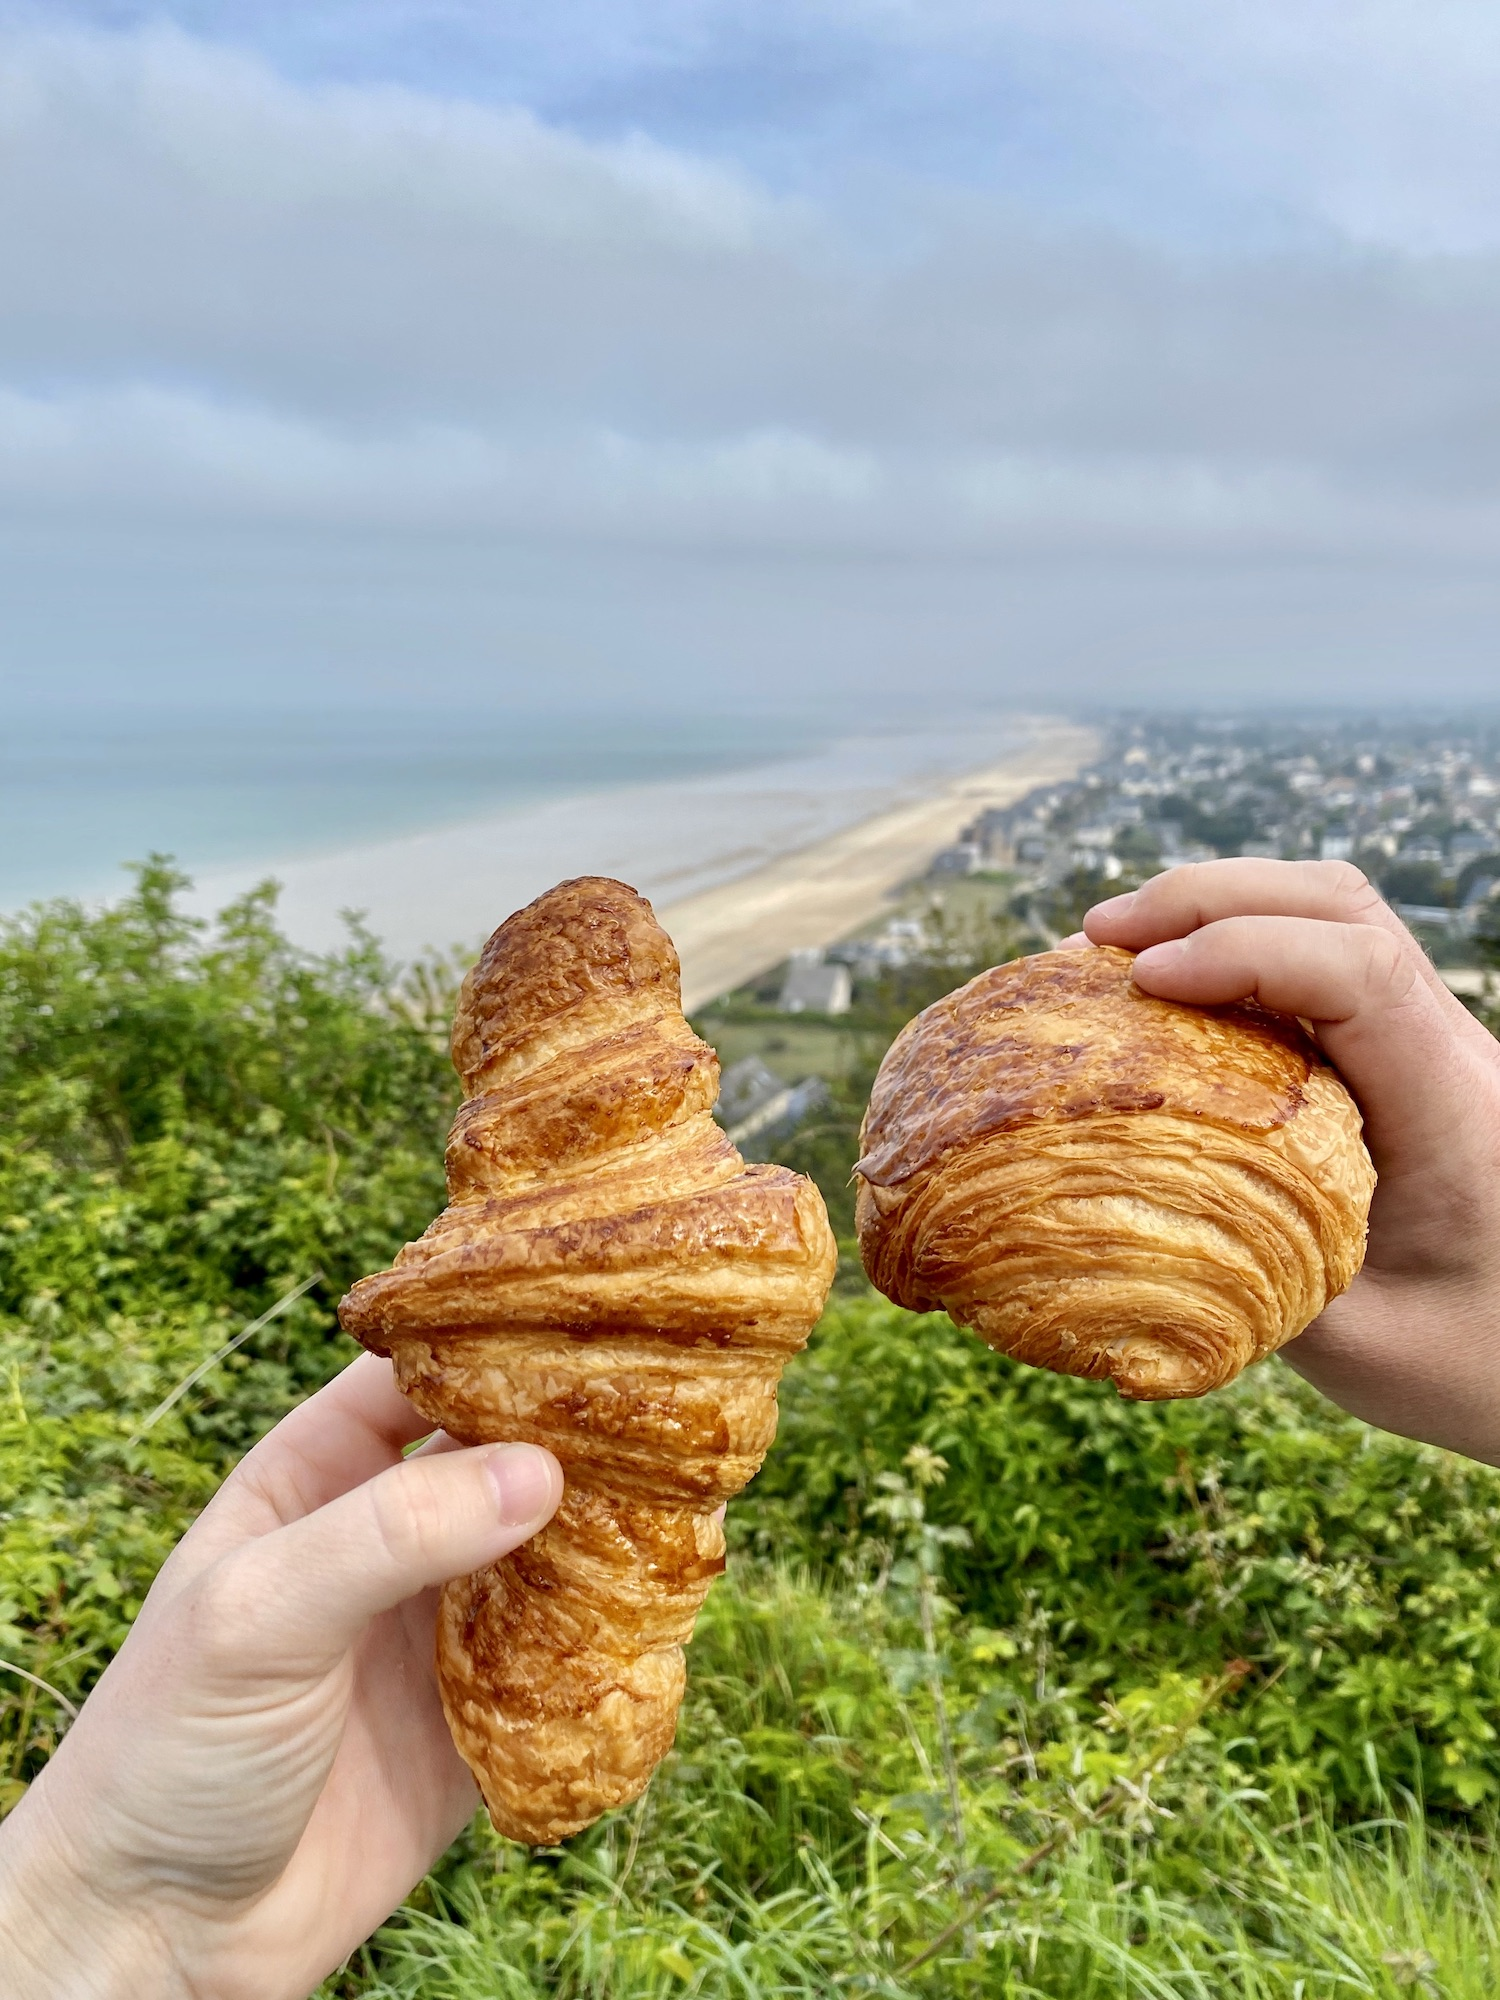 Wearing sweatpants in France for a Sunday croissant